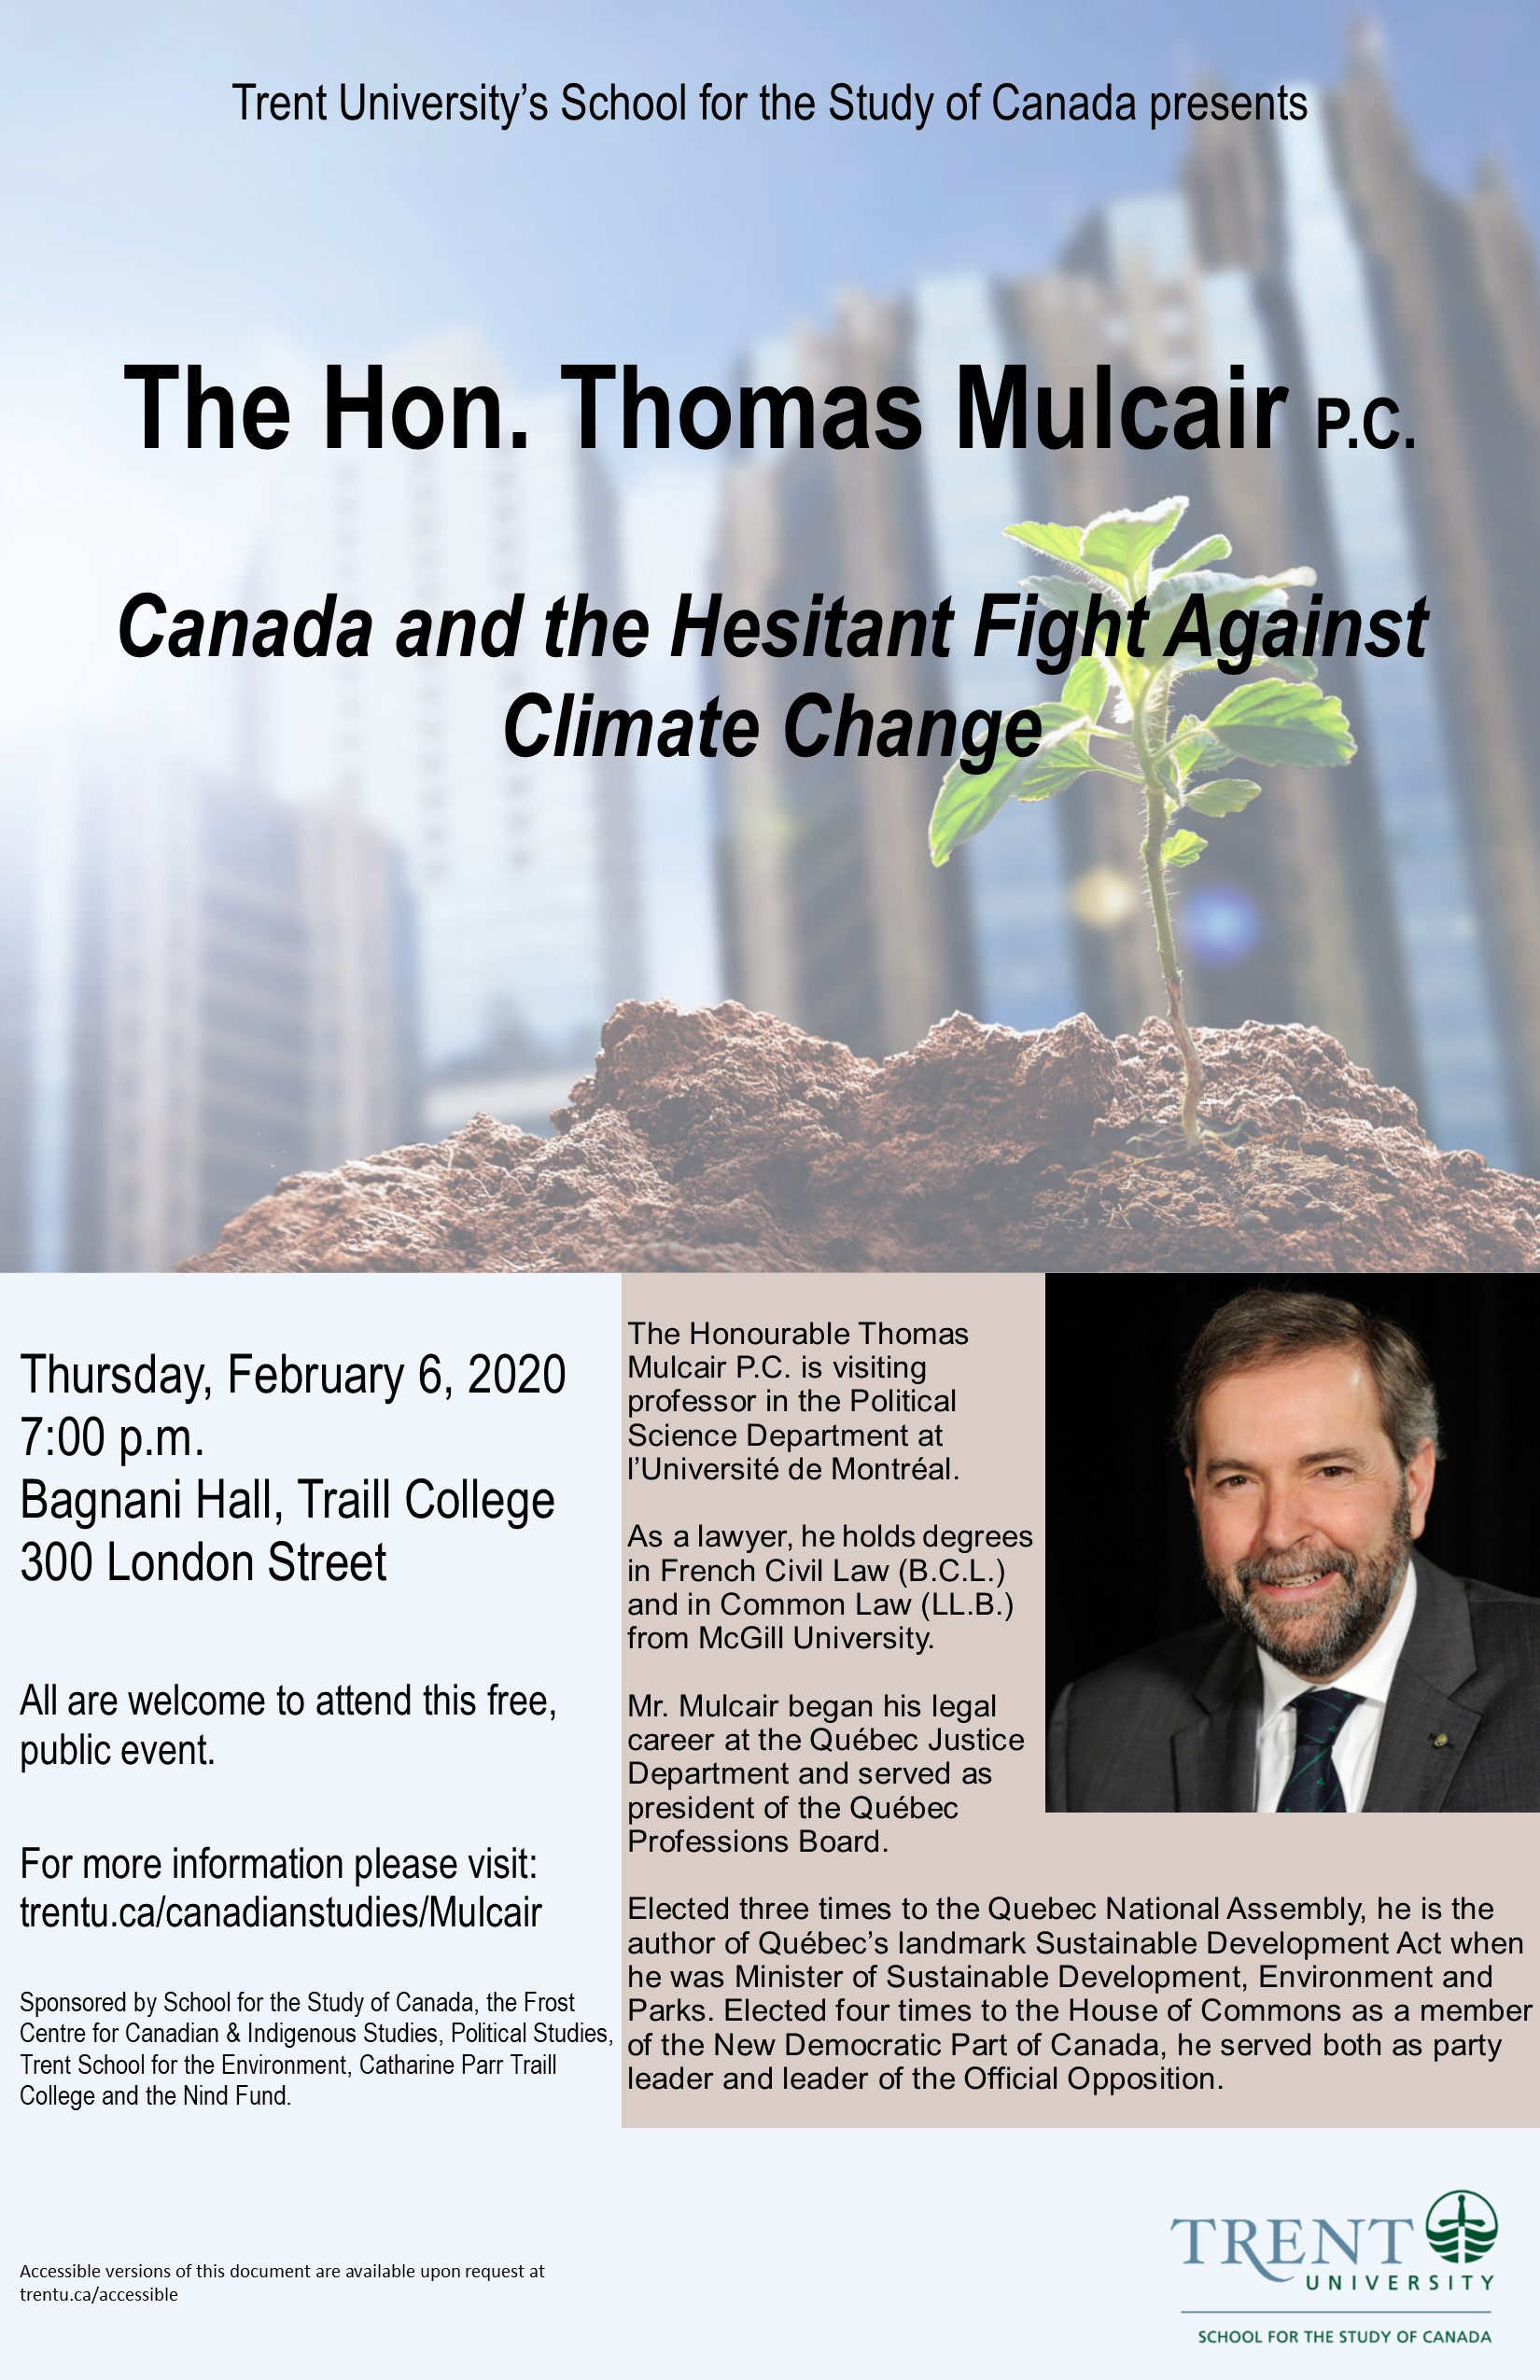 Canada and the Hesitant Fight Against Climate Change event poster